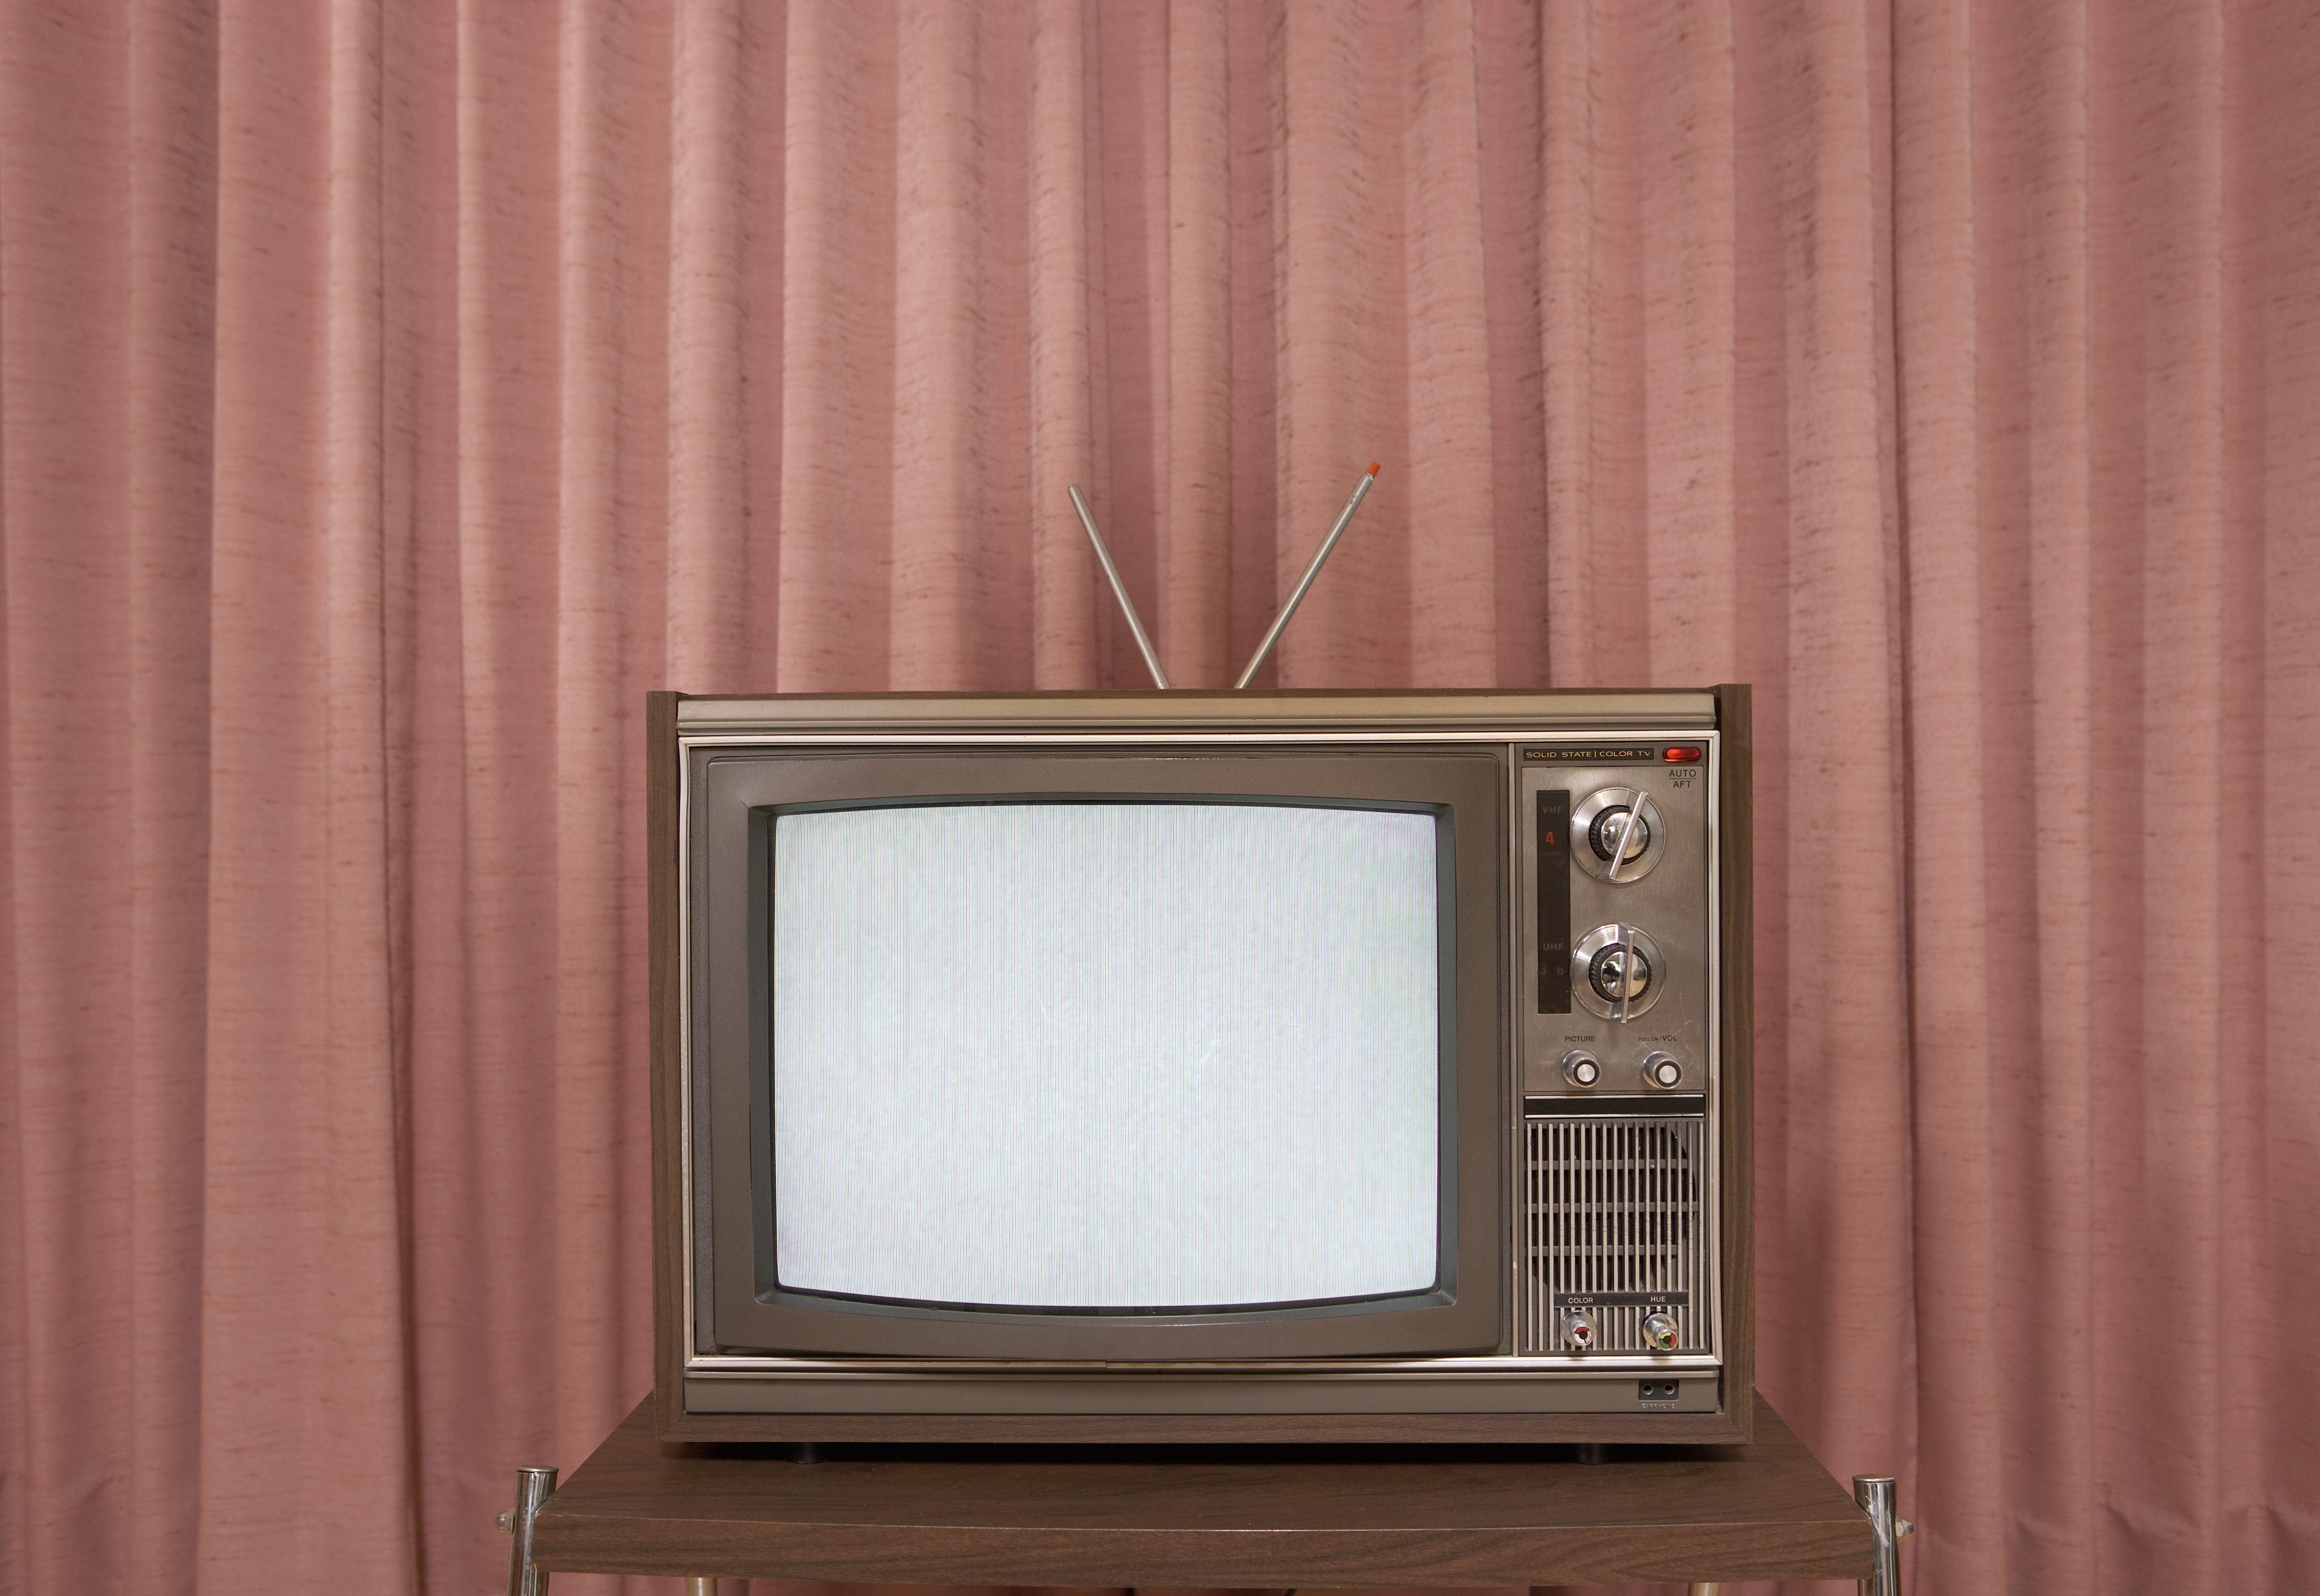 Tv Tuners And Digital Tv Where Is The Digital Tuner